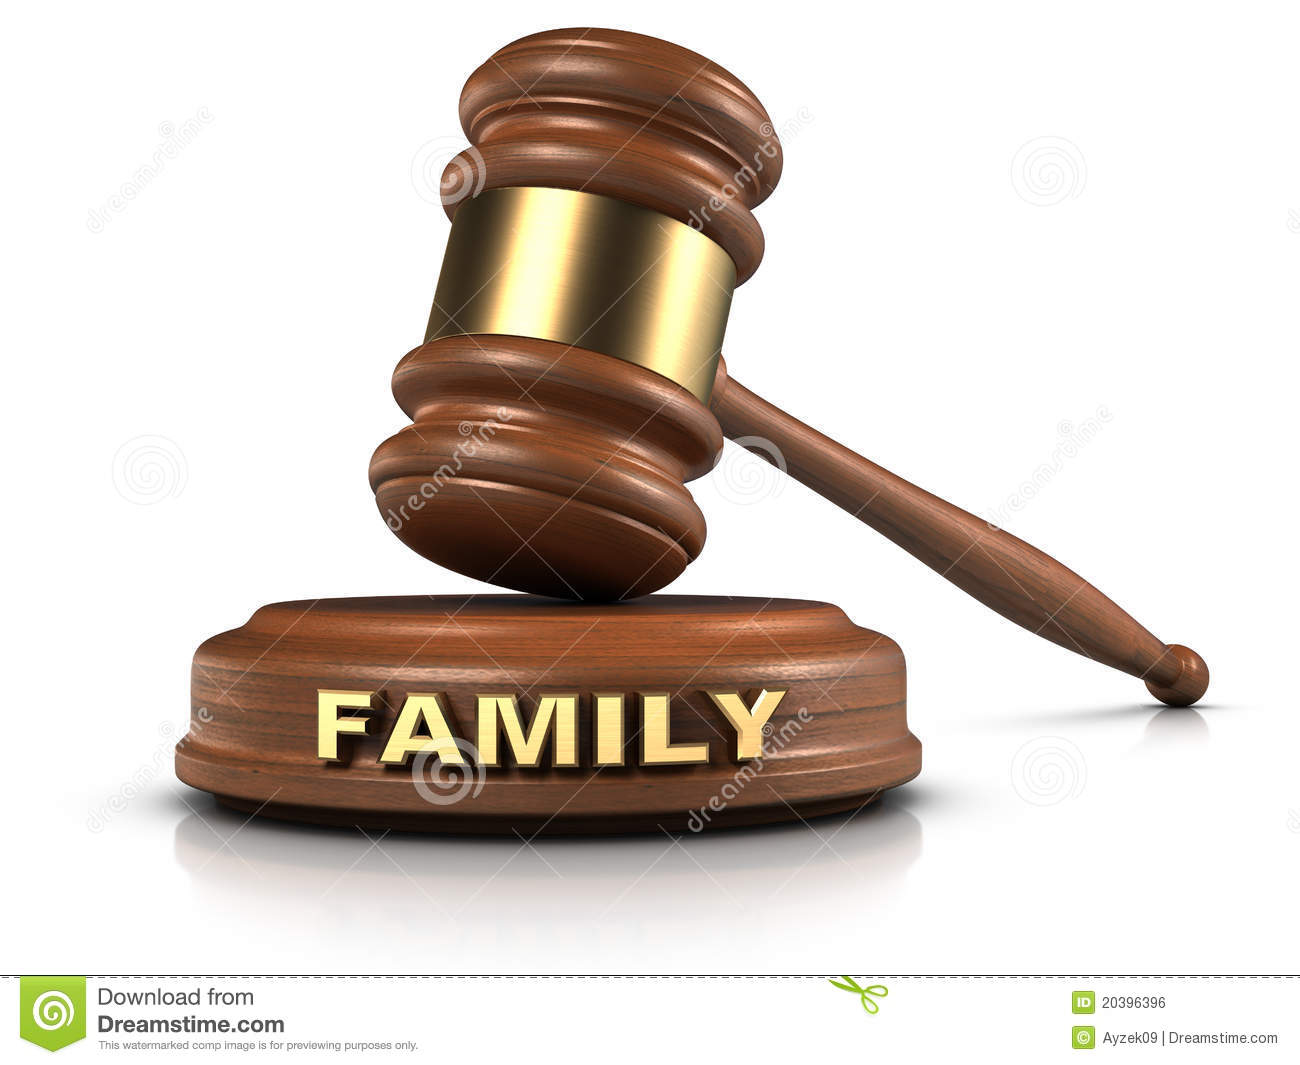 Family law and religion